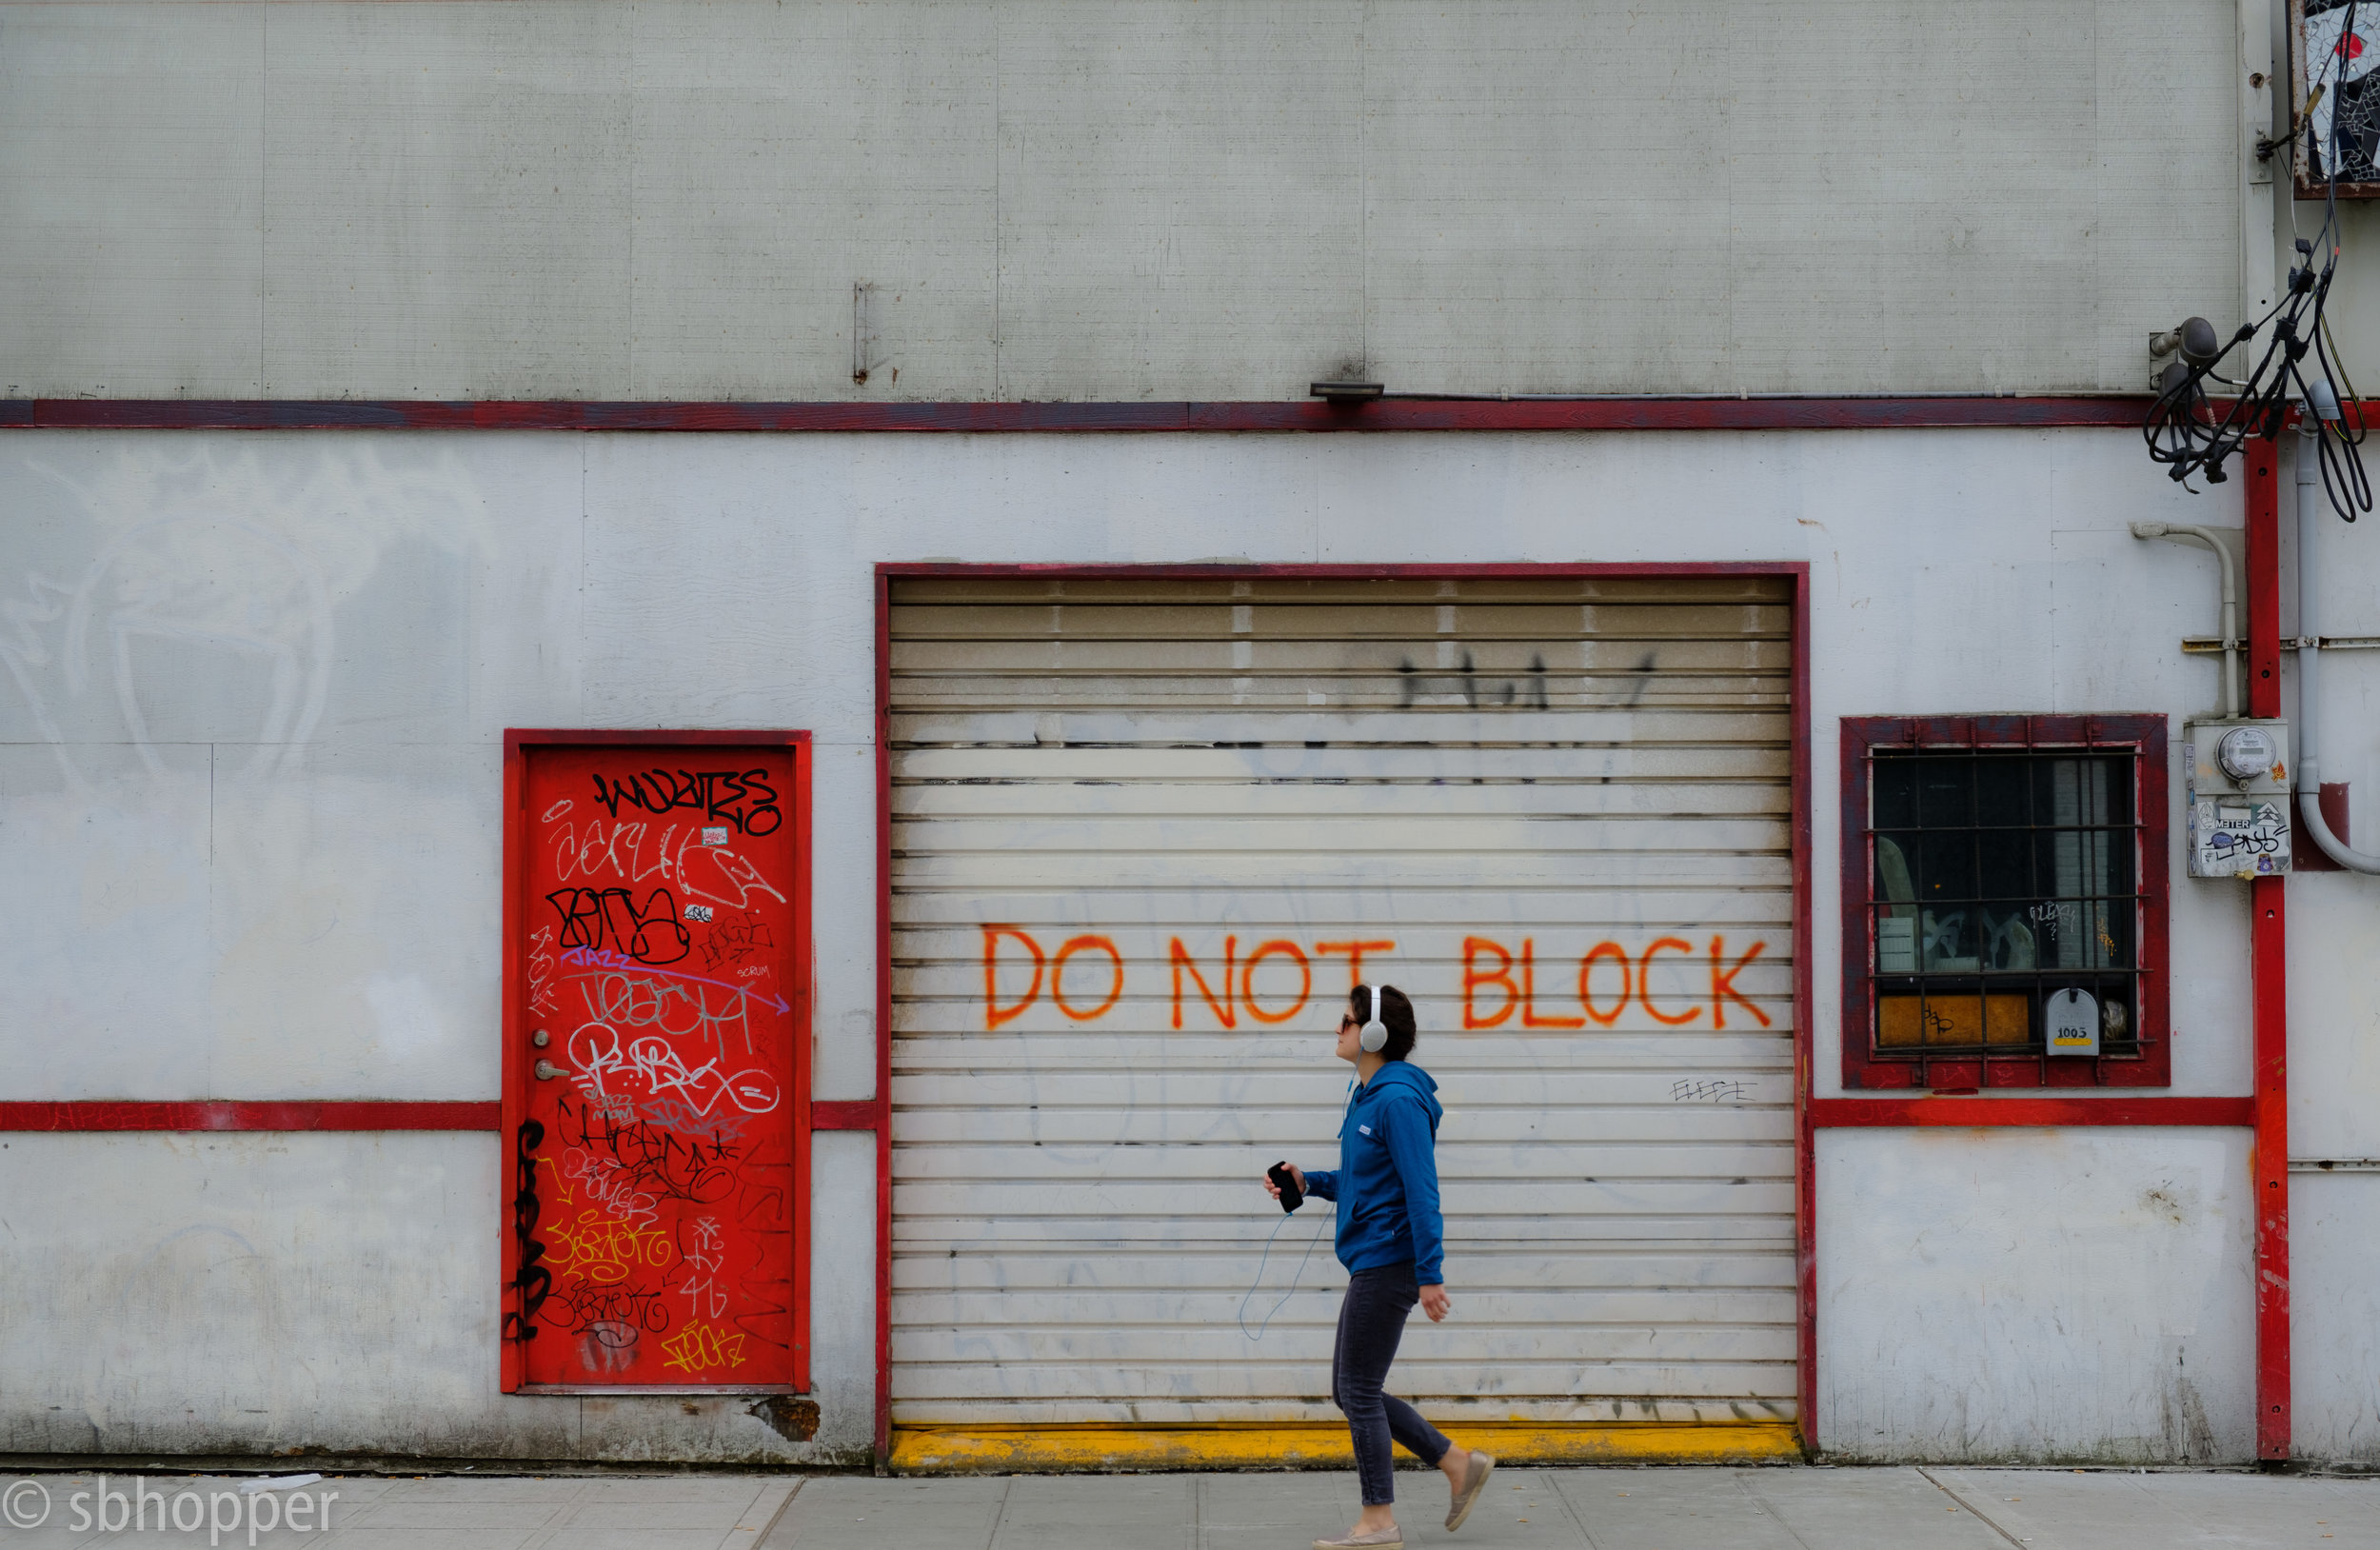 Do Not Block (1 of 1)